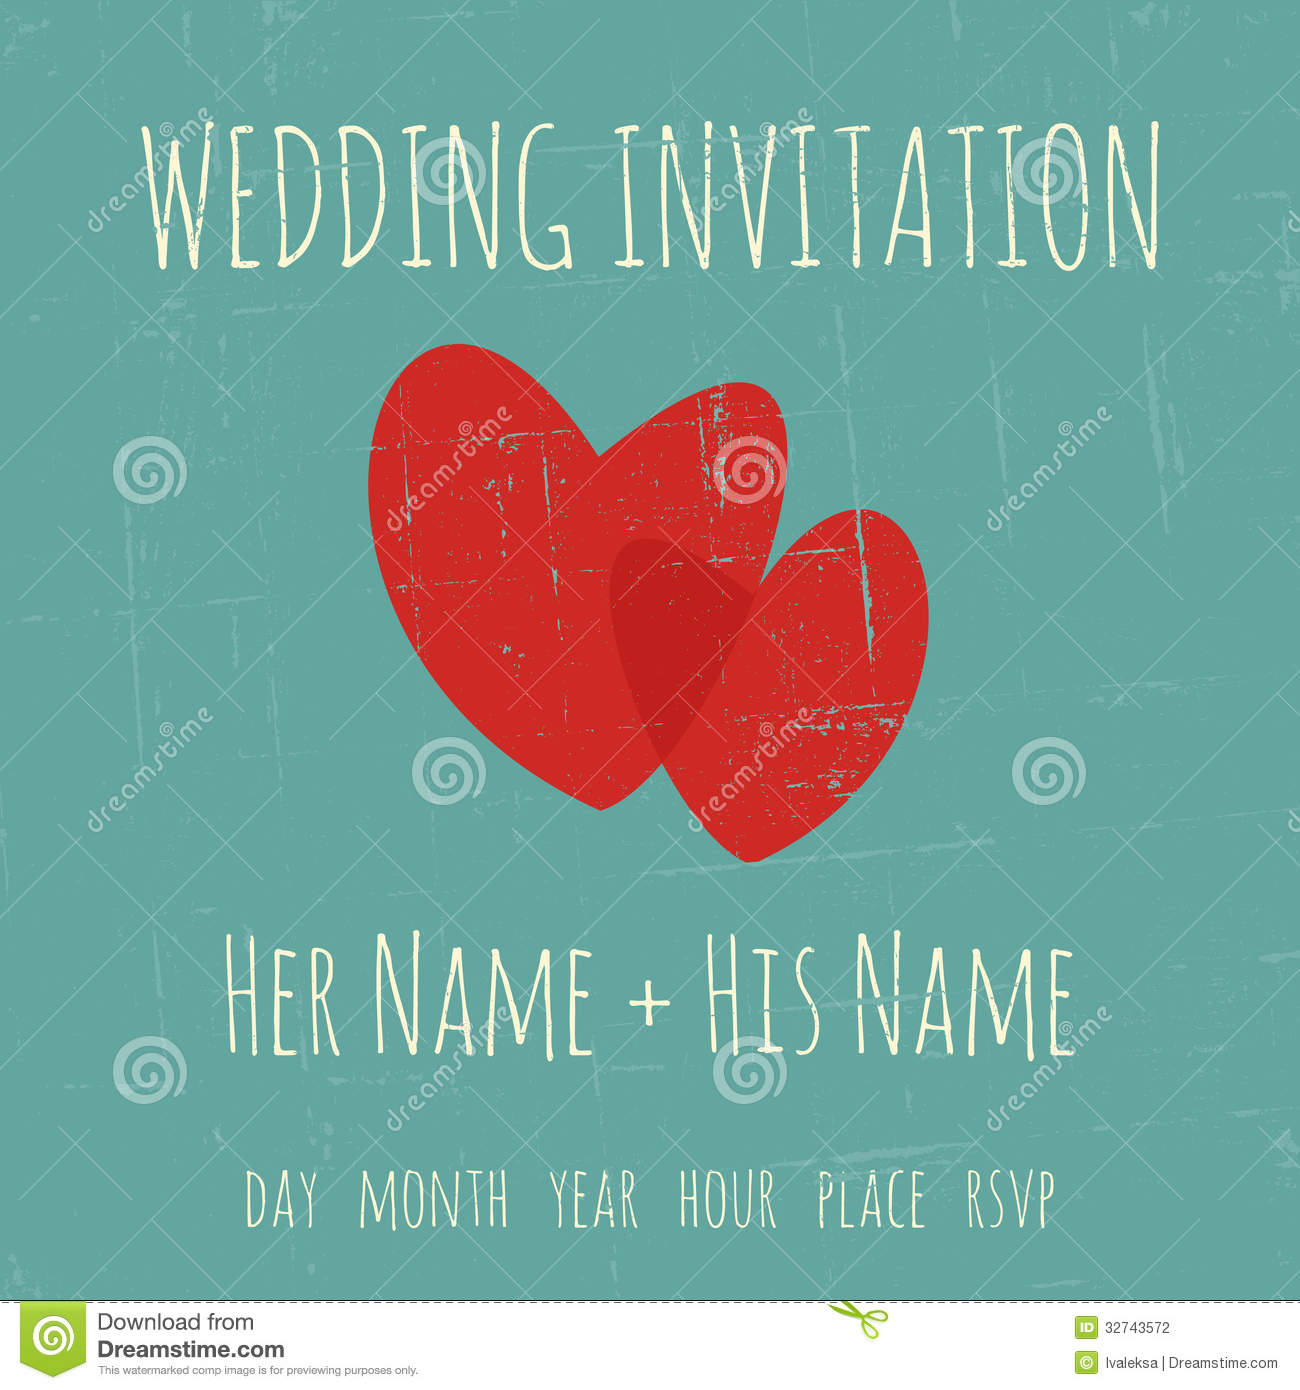 Wedding Invitation Template Stock Vector Illustration Of Hearts